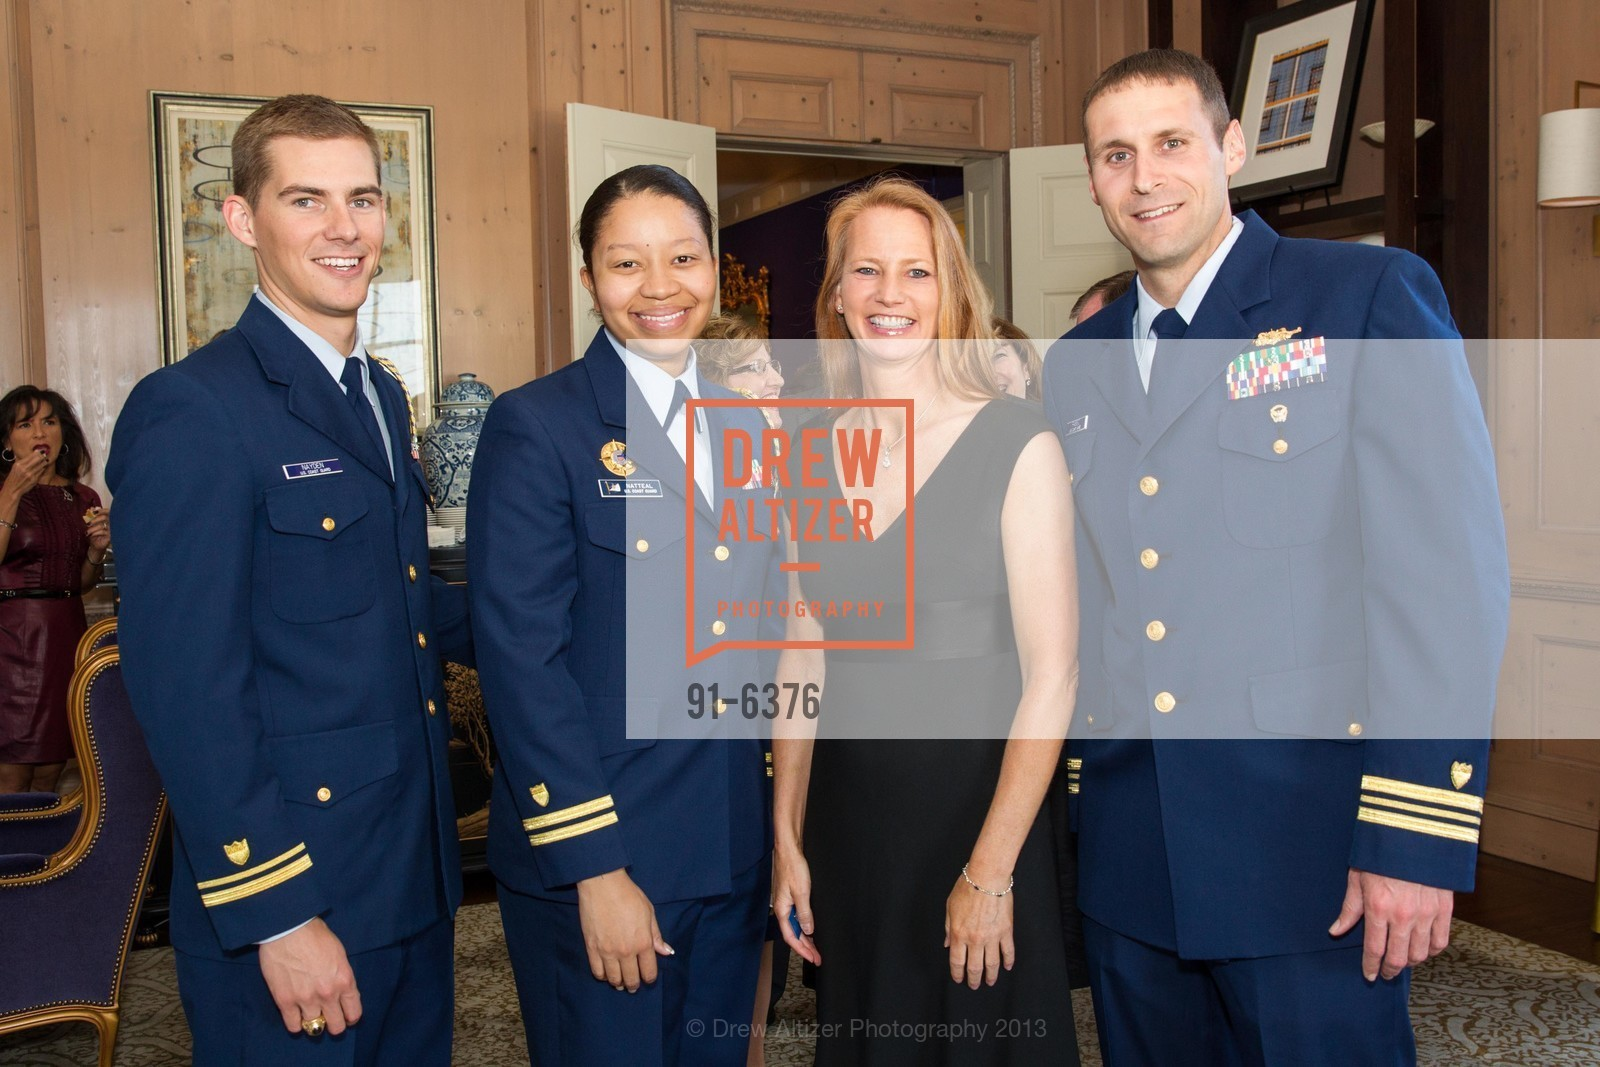 Roger Nayden, Nikea Natteal, Judith Roos, Andrew Passic, COAST GUARD FOUNDATION Presents Pacific Awards Dinner, US, April 25th, 2013